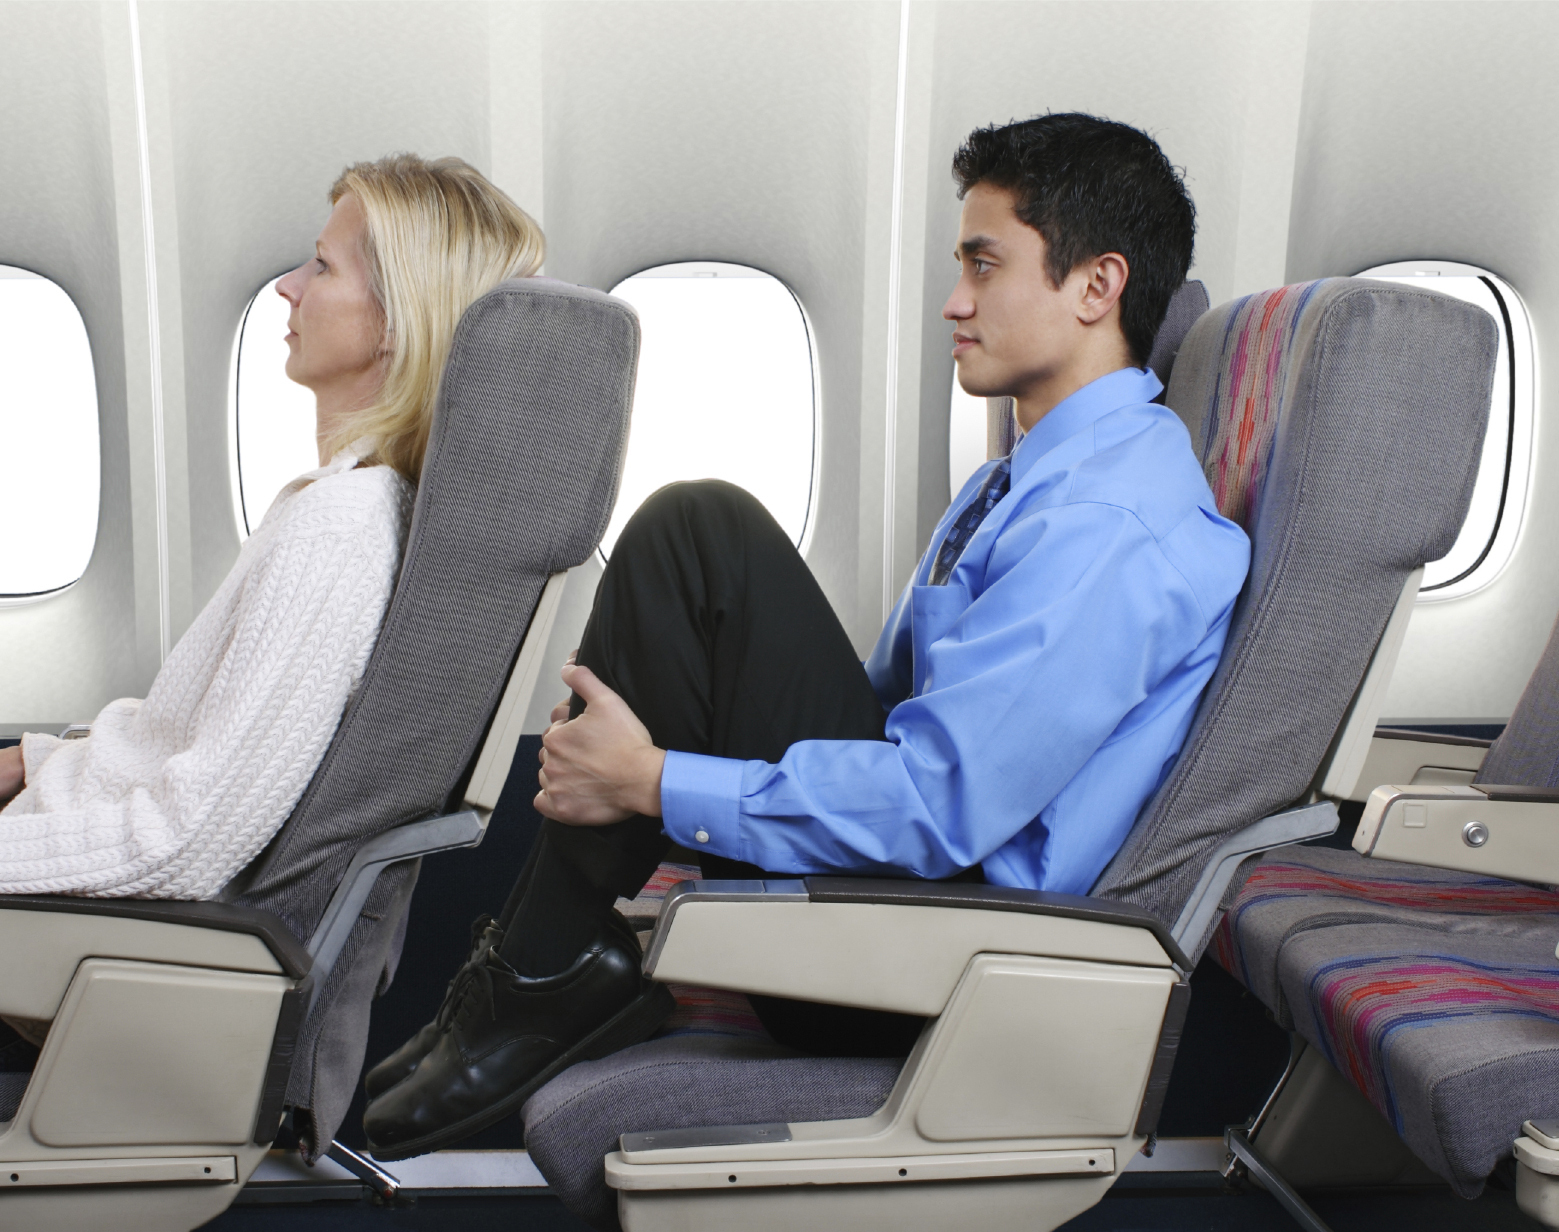 Economy-Class_sendrom_syndrome_aircraft_seat